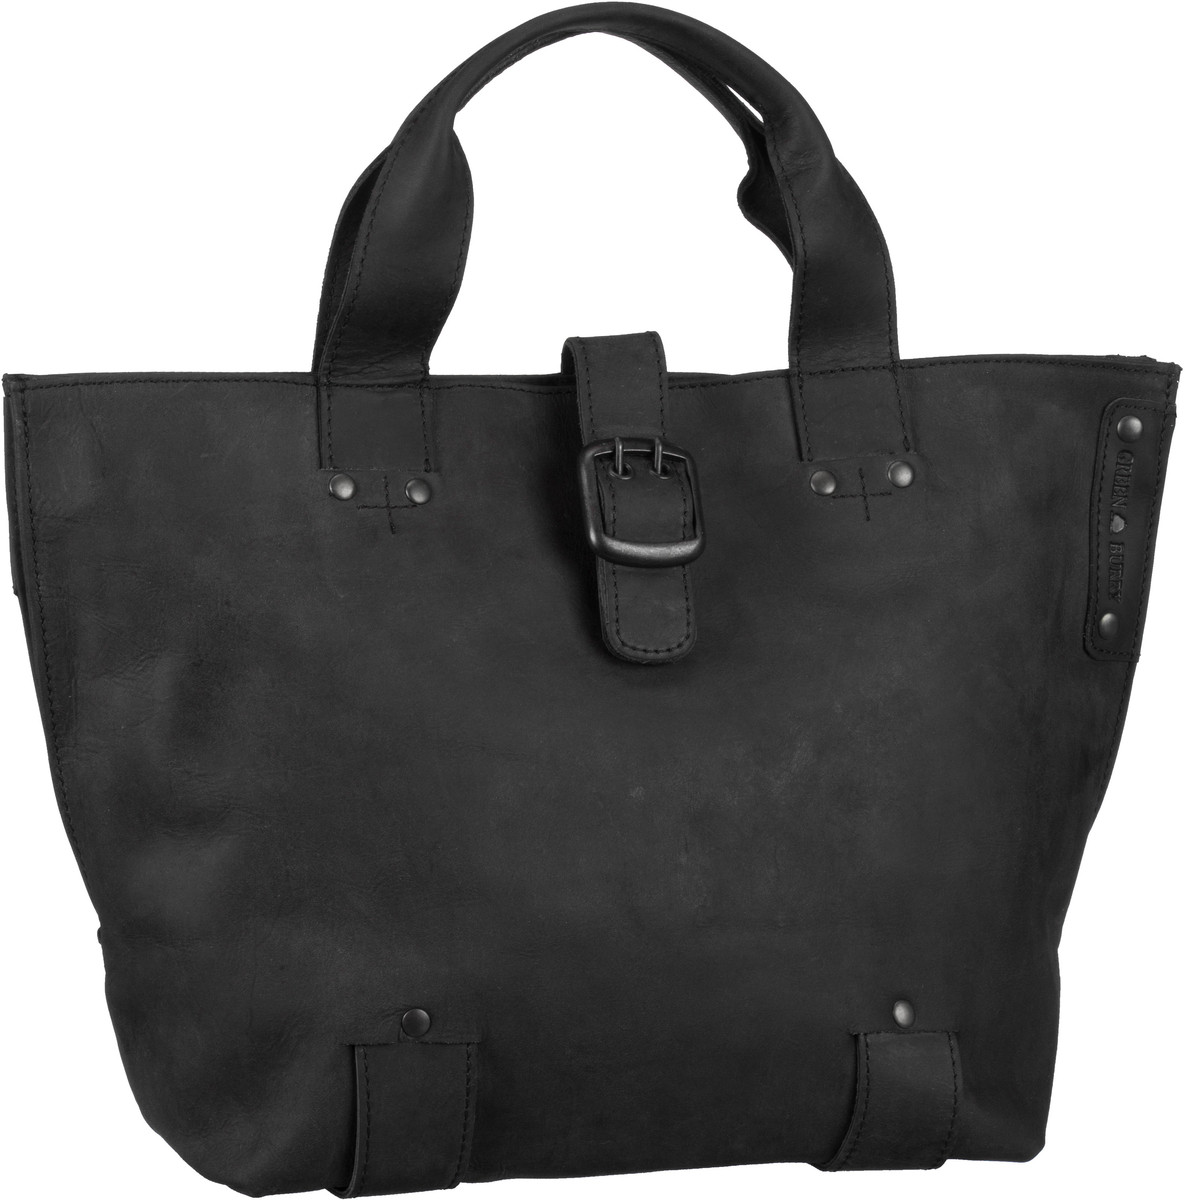 Handtasche Vintage Revival 1944 Shopper Black